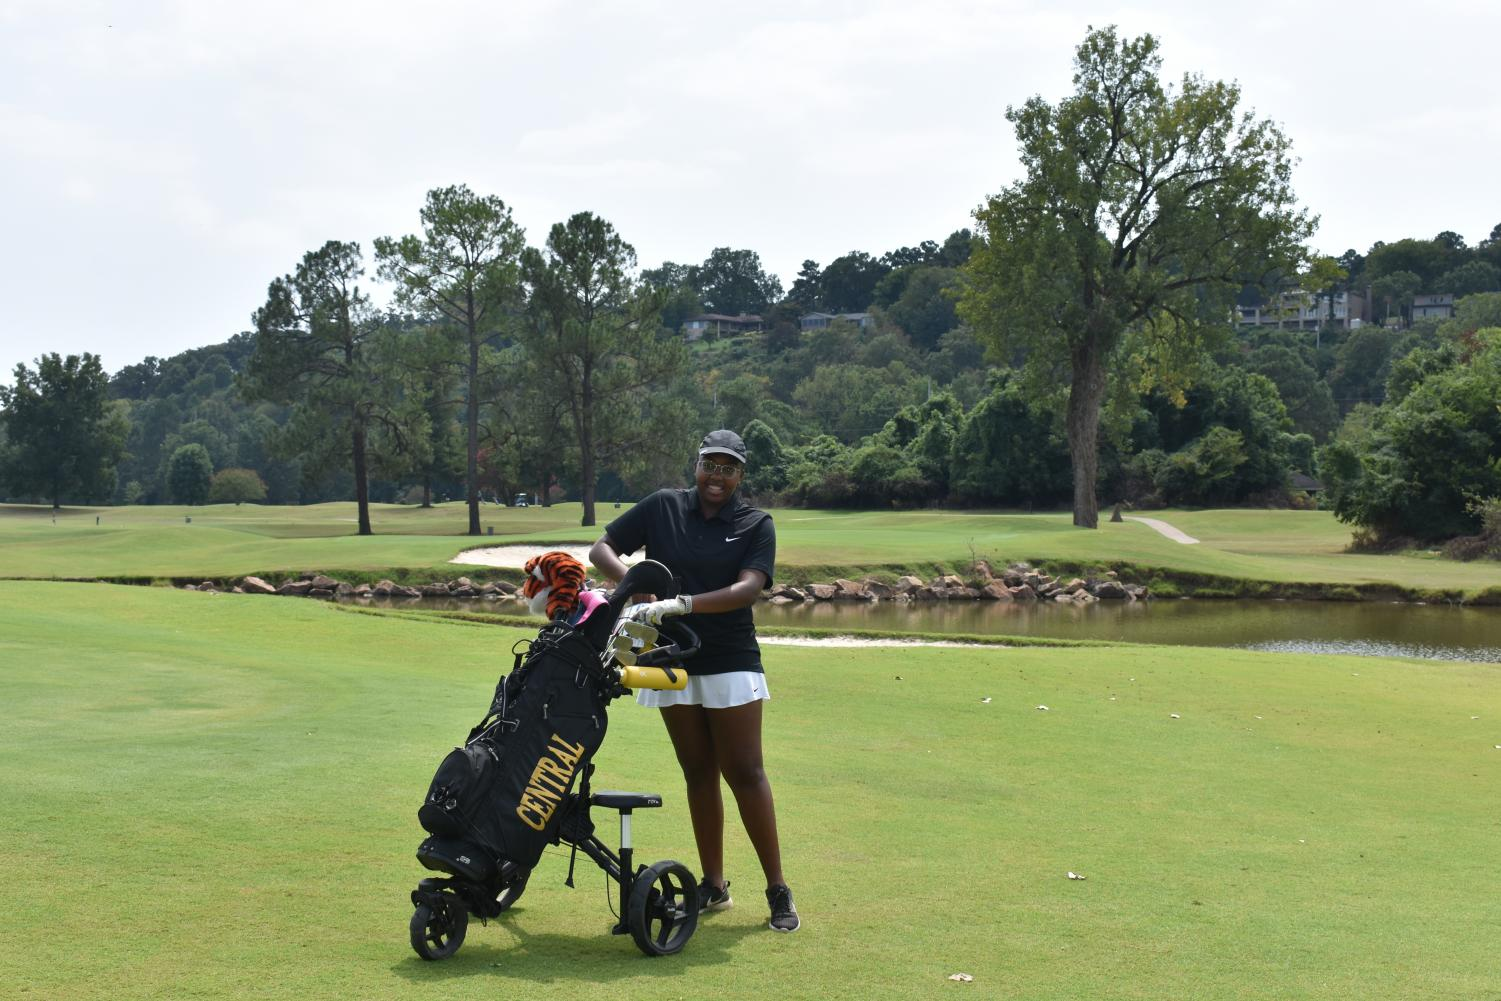 Kayln Pendelton puts her club away and gets ready to head to the next hole at the Rebsamen. Pendelton won first place overall at the Jaycees Golf tournament on Aug. 30.